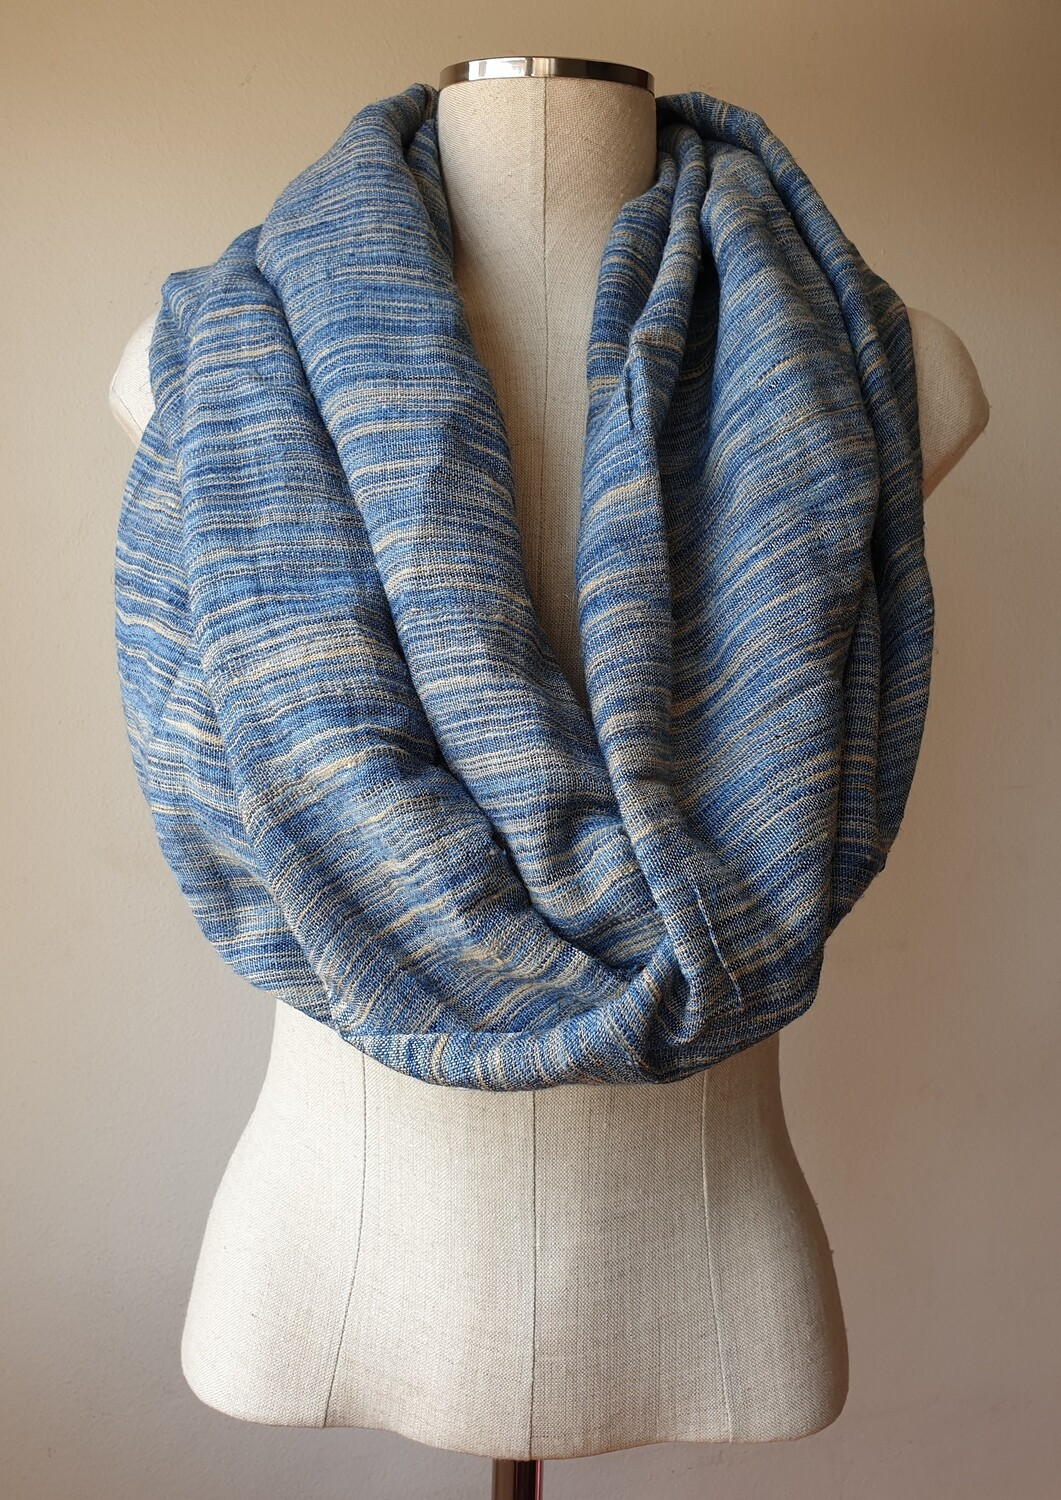 Linen Shawl: Mixed Jeans